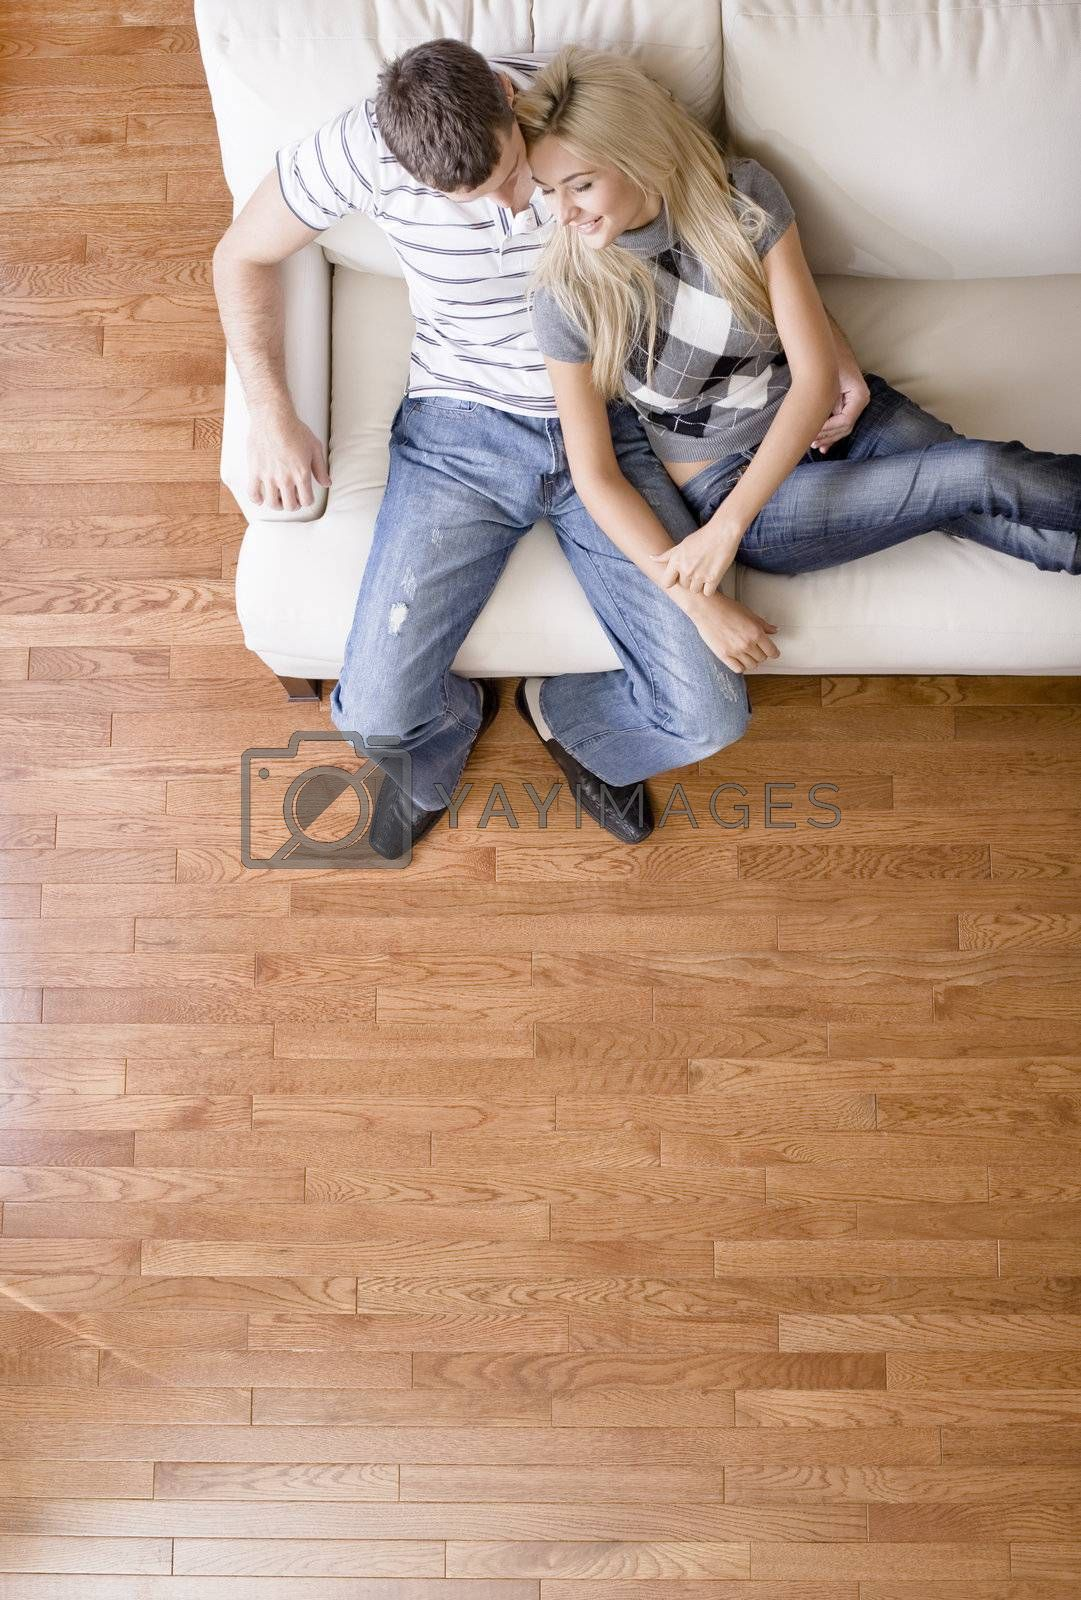 Cropped overhead view of affectionate couple sitting together on white love seat. Vertical format.